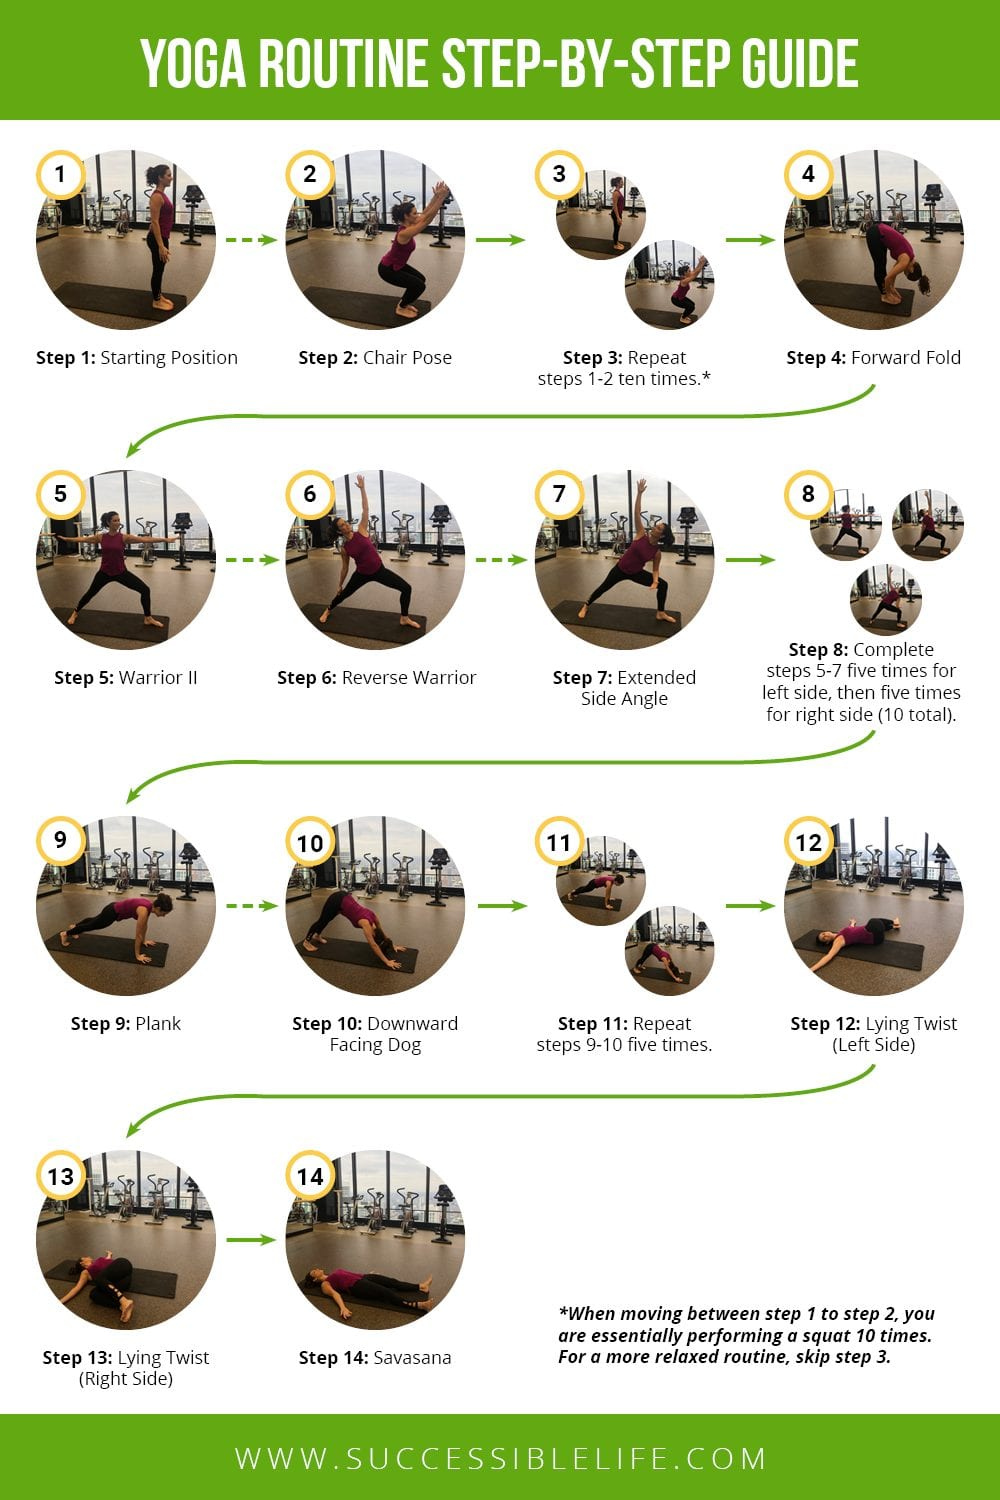 Yoga Routine Step-by-Step Guide